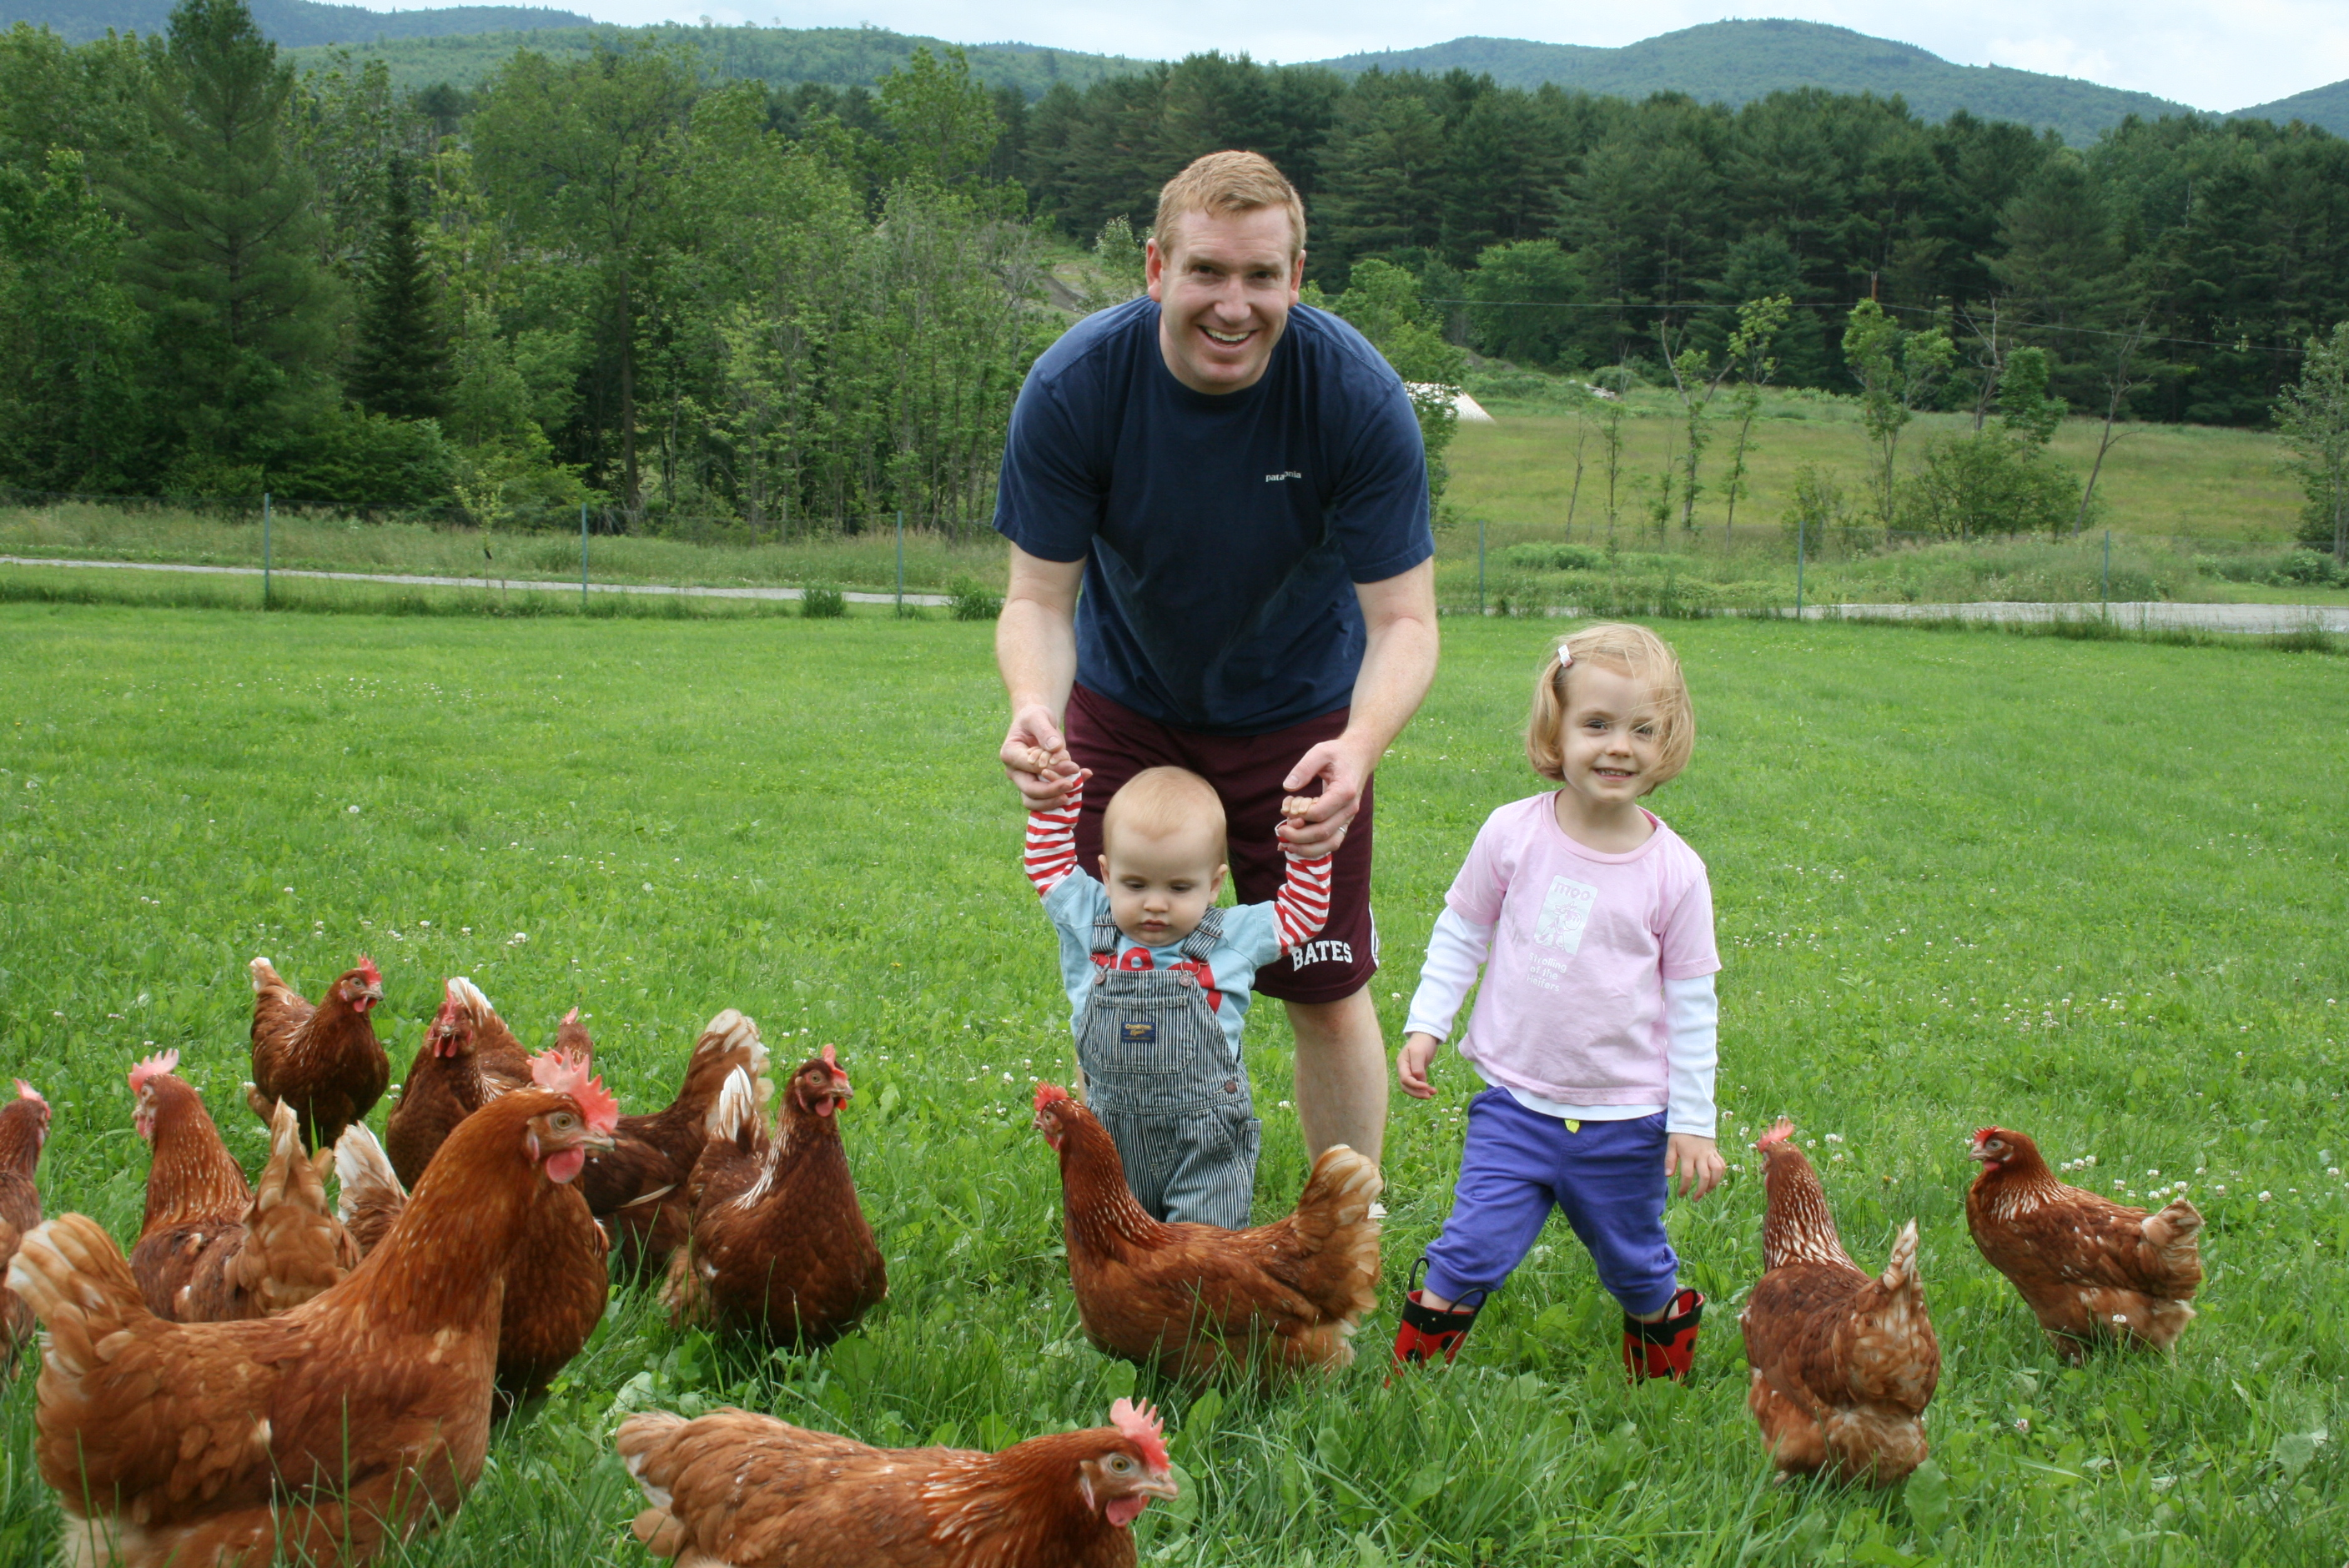 Organic Egg Farm Establishes New Pecking Order